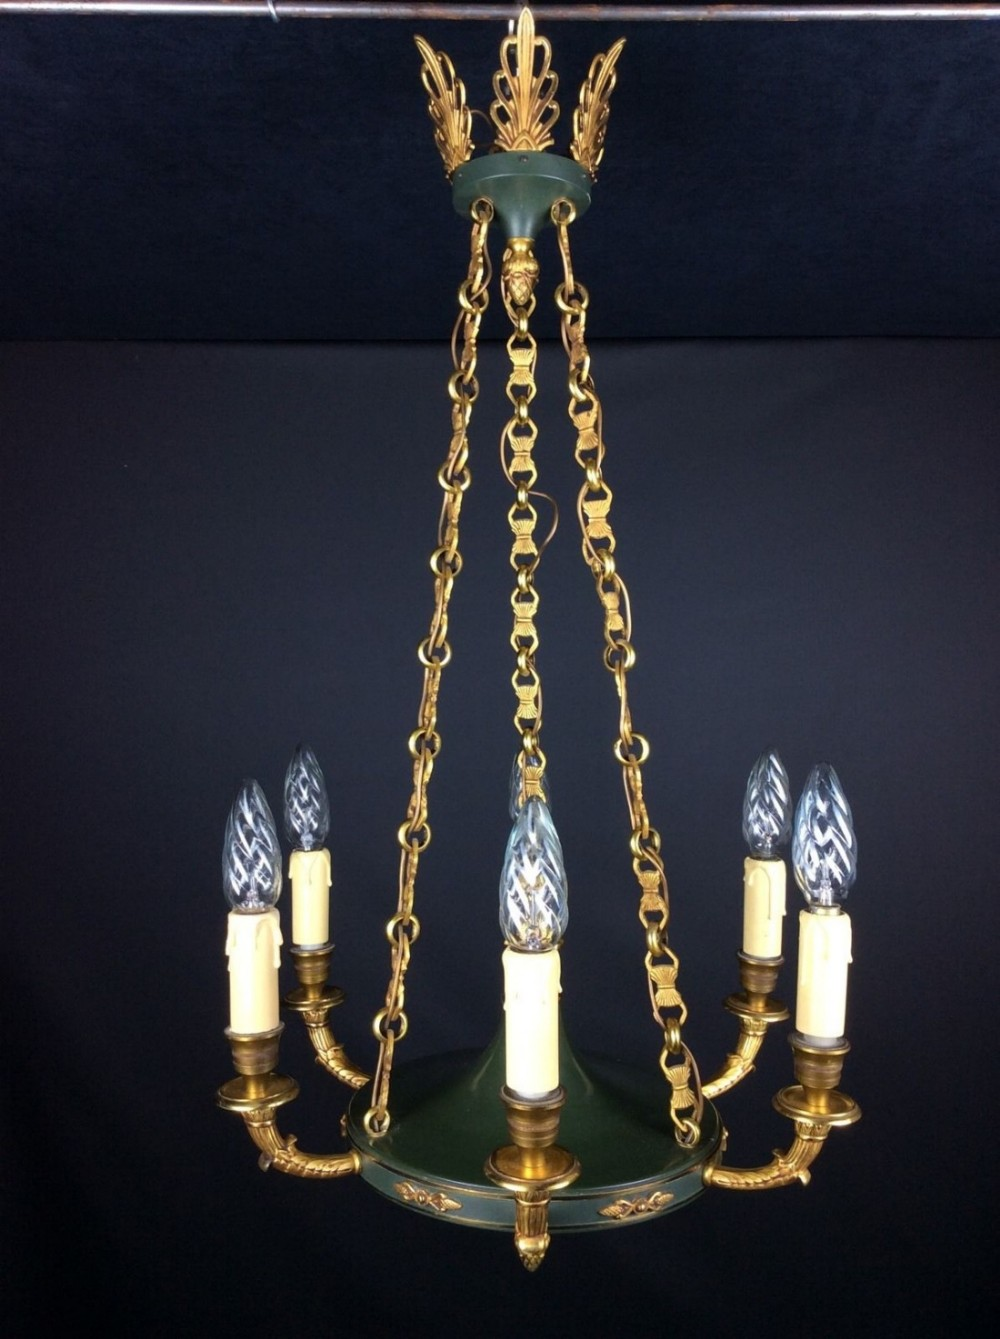 Cora Ceiling Light Bronze 6 Arm : Gorgeous french empire style arm bronze chandelier